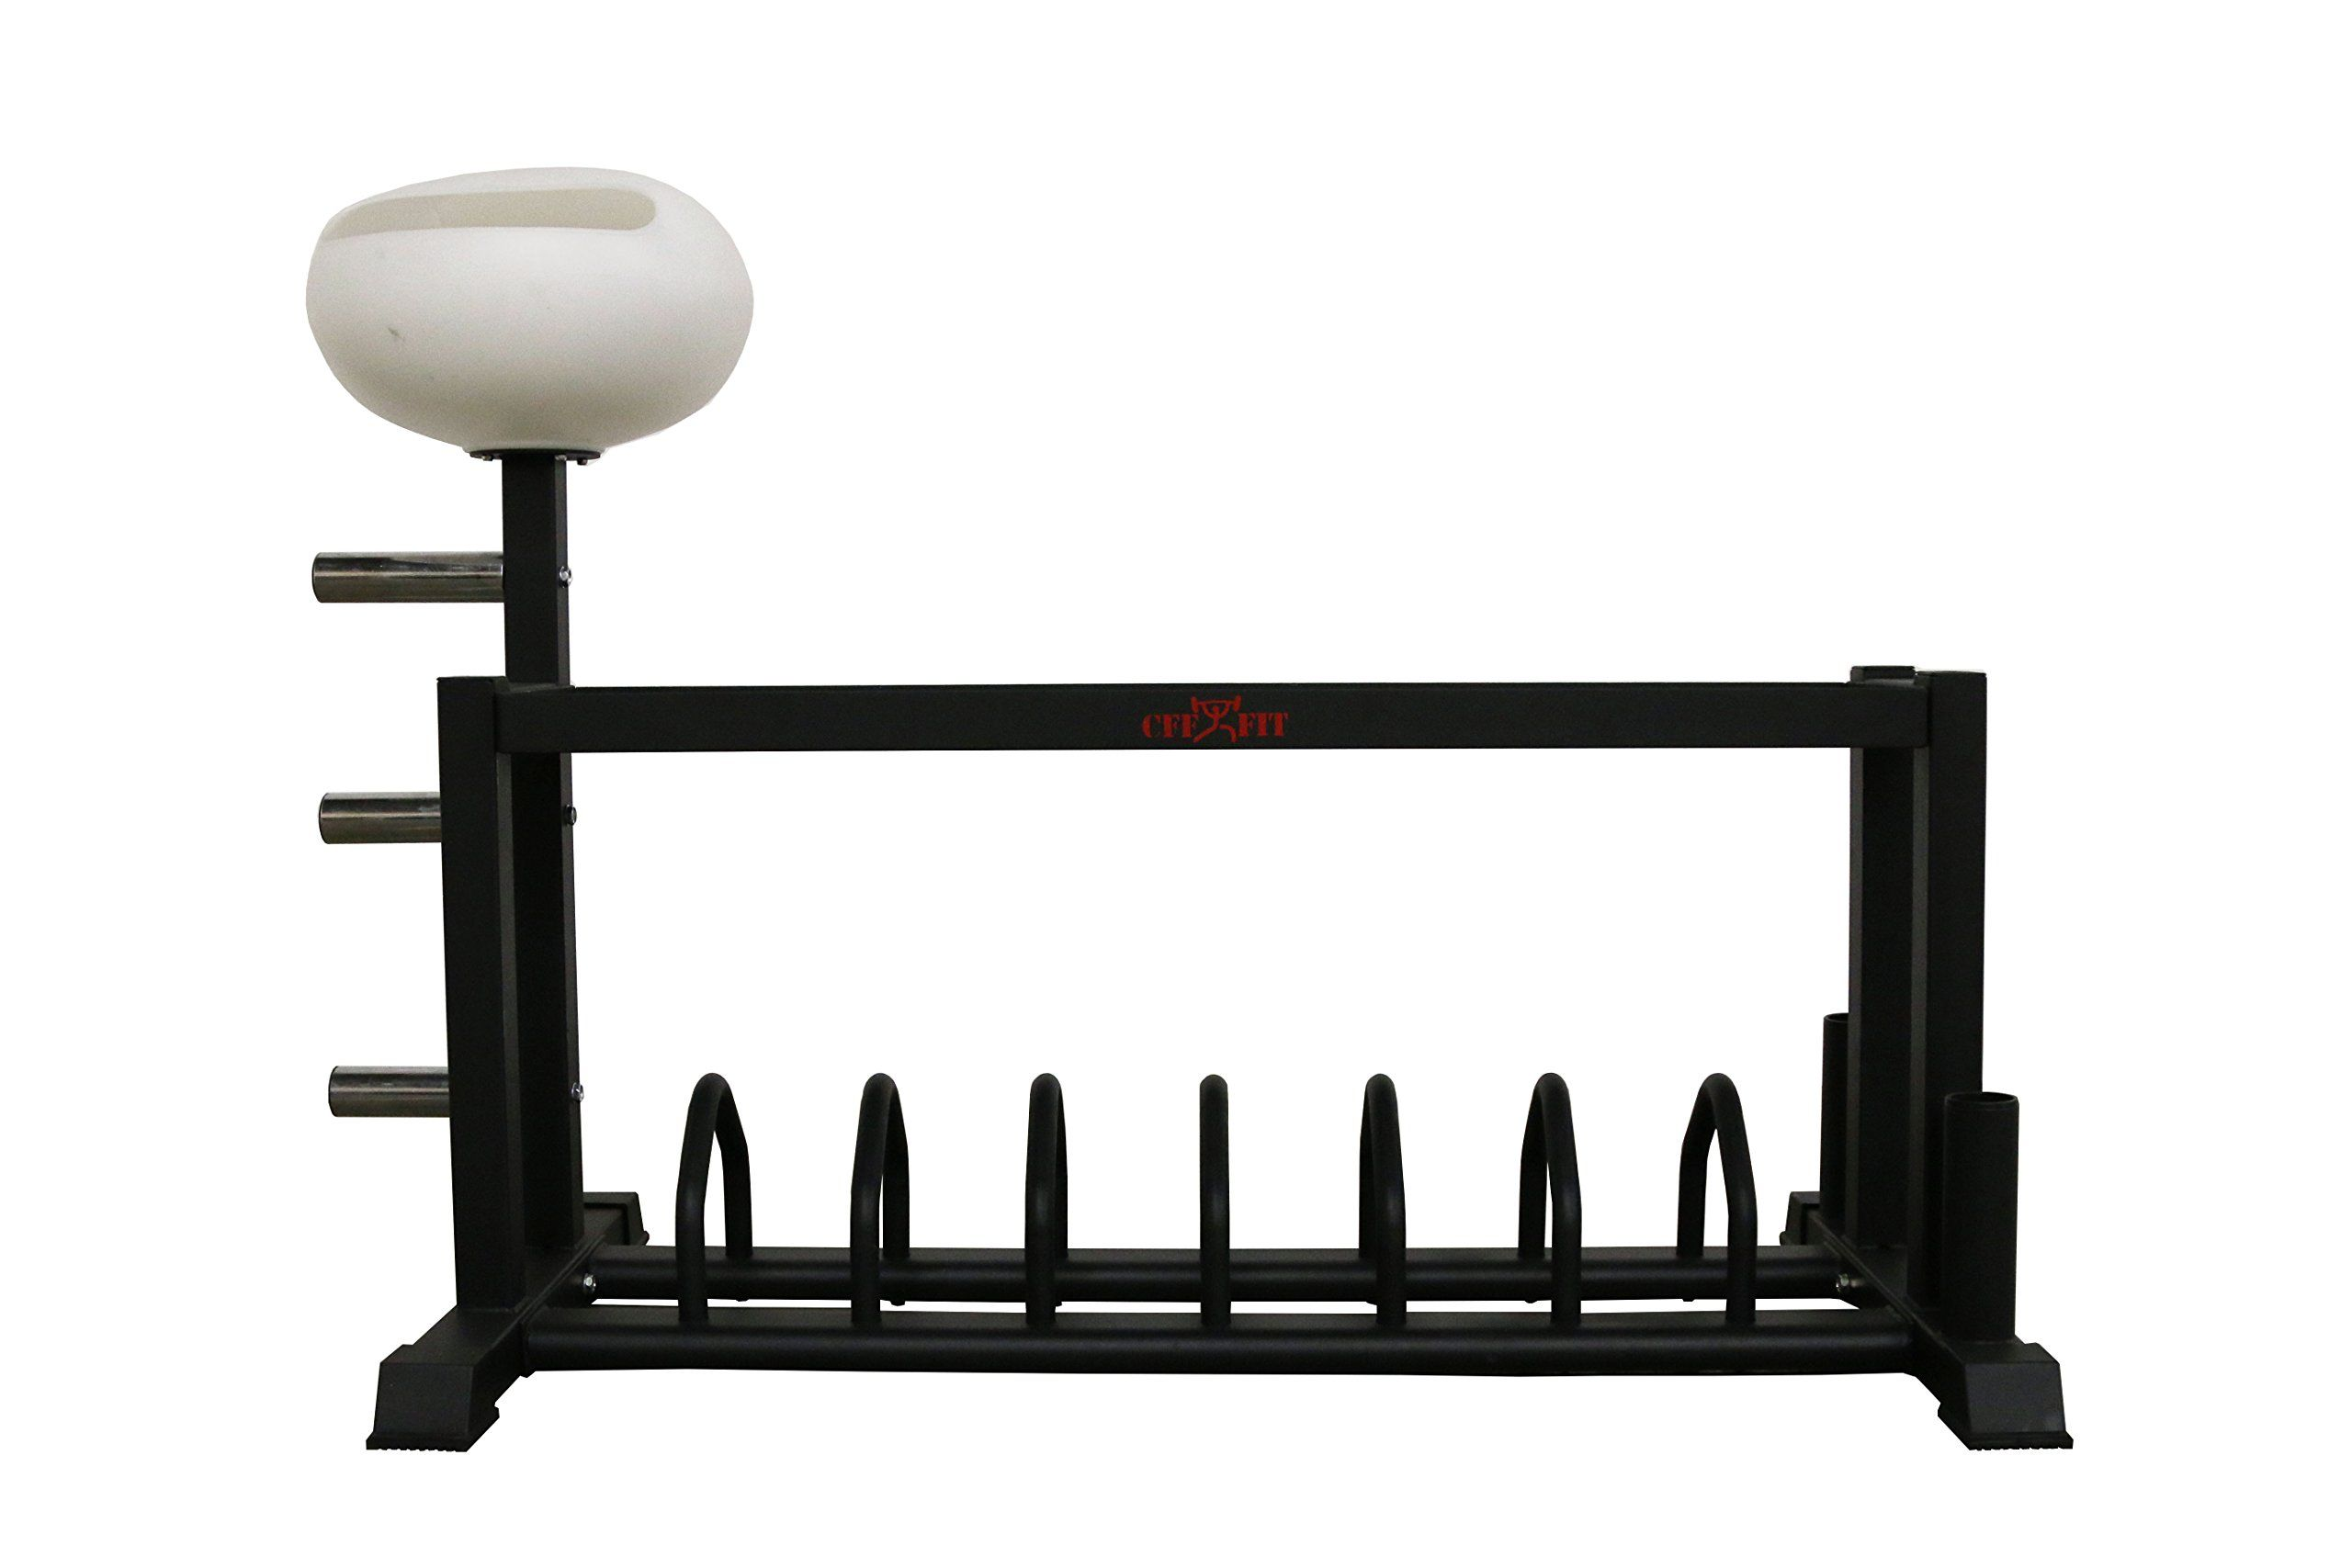 barbell supply id bolt rack vertical details llc products fitness storage home product main